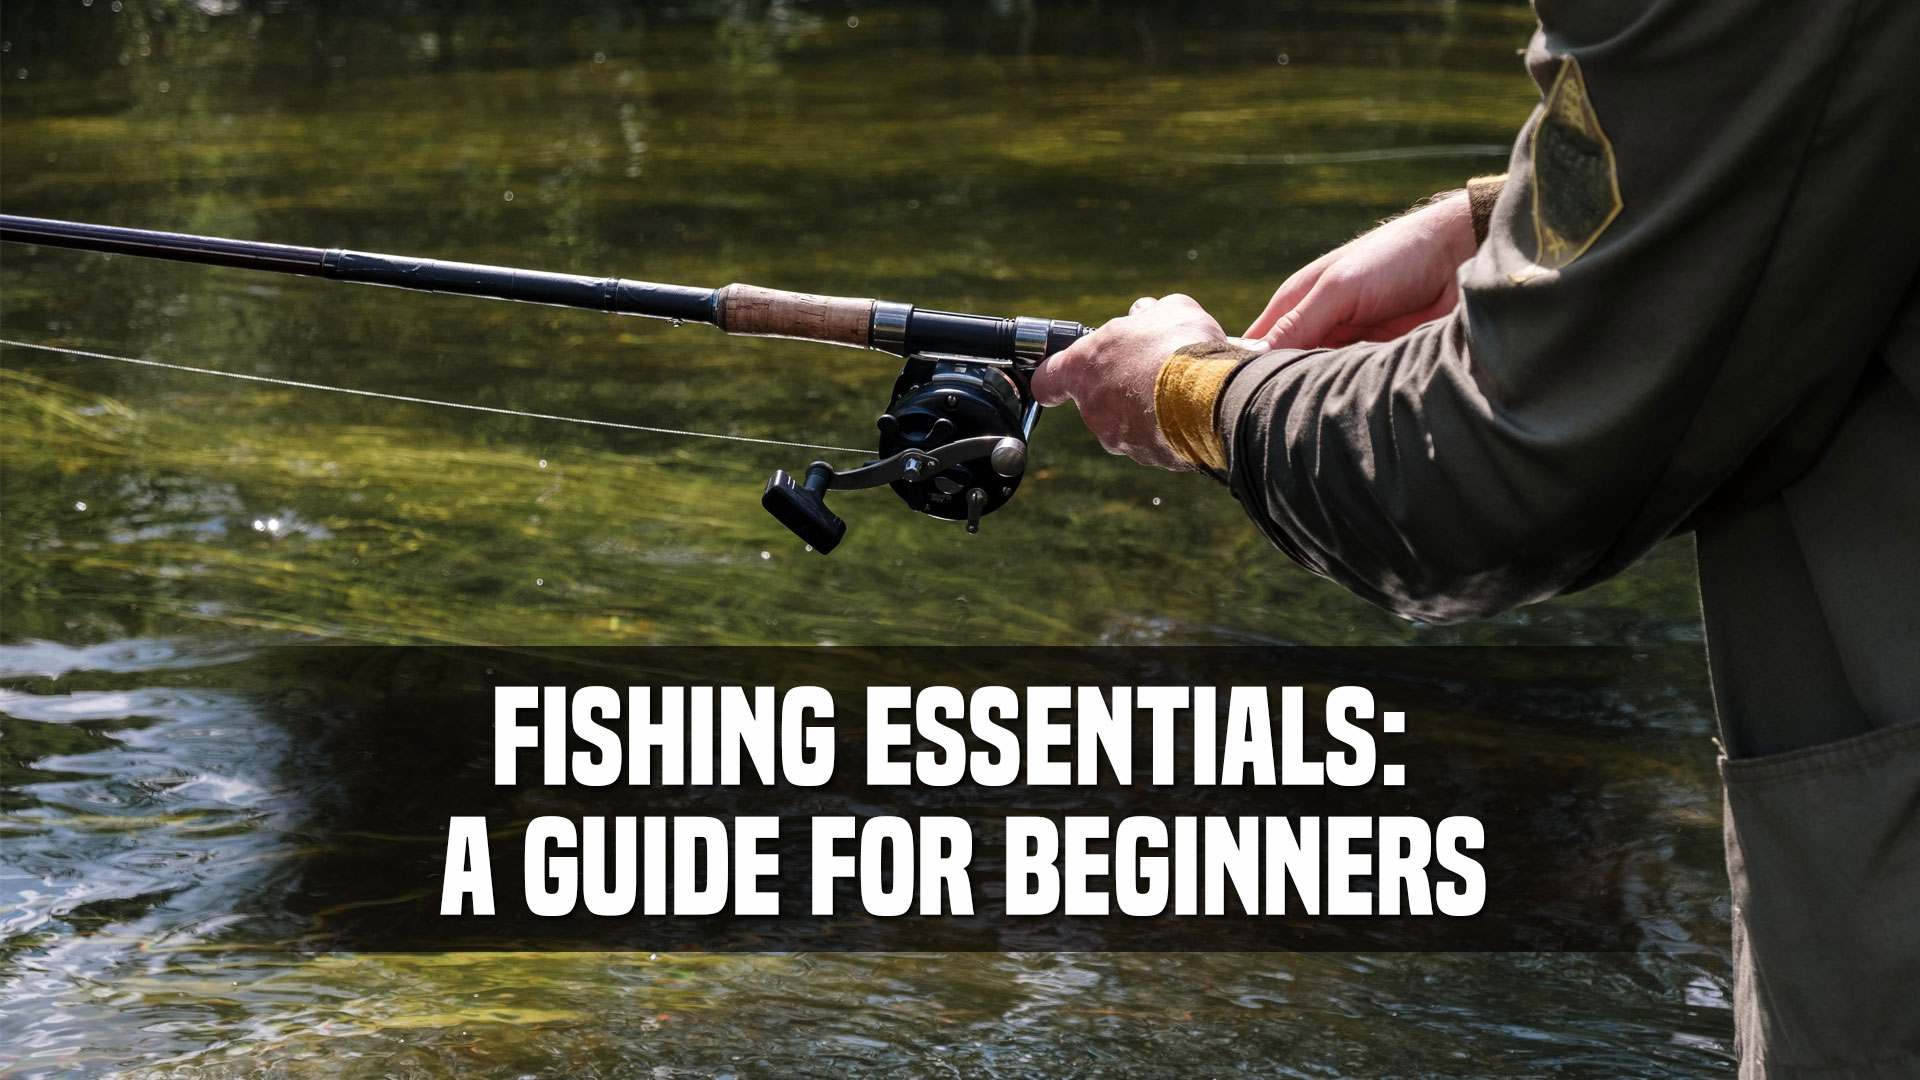 Fishing-Essentials-A-Guide-for-Beginners